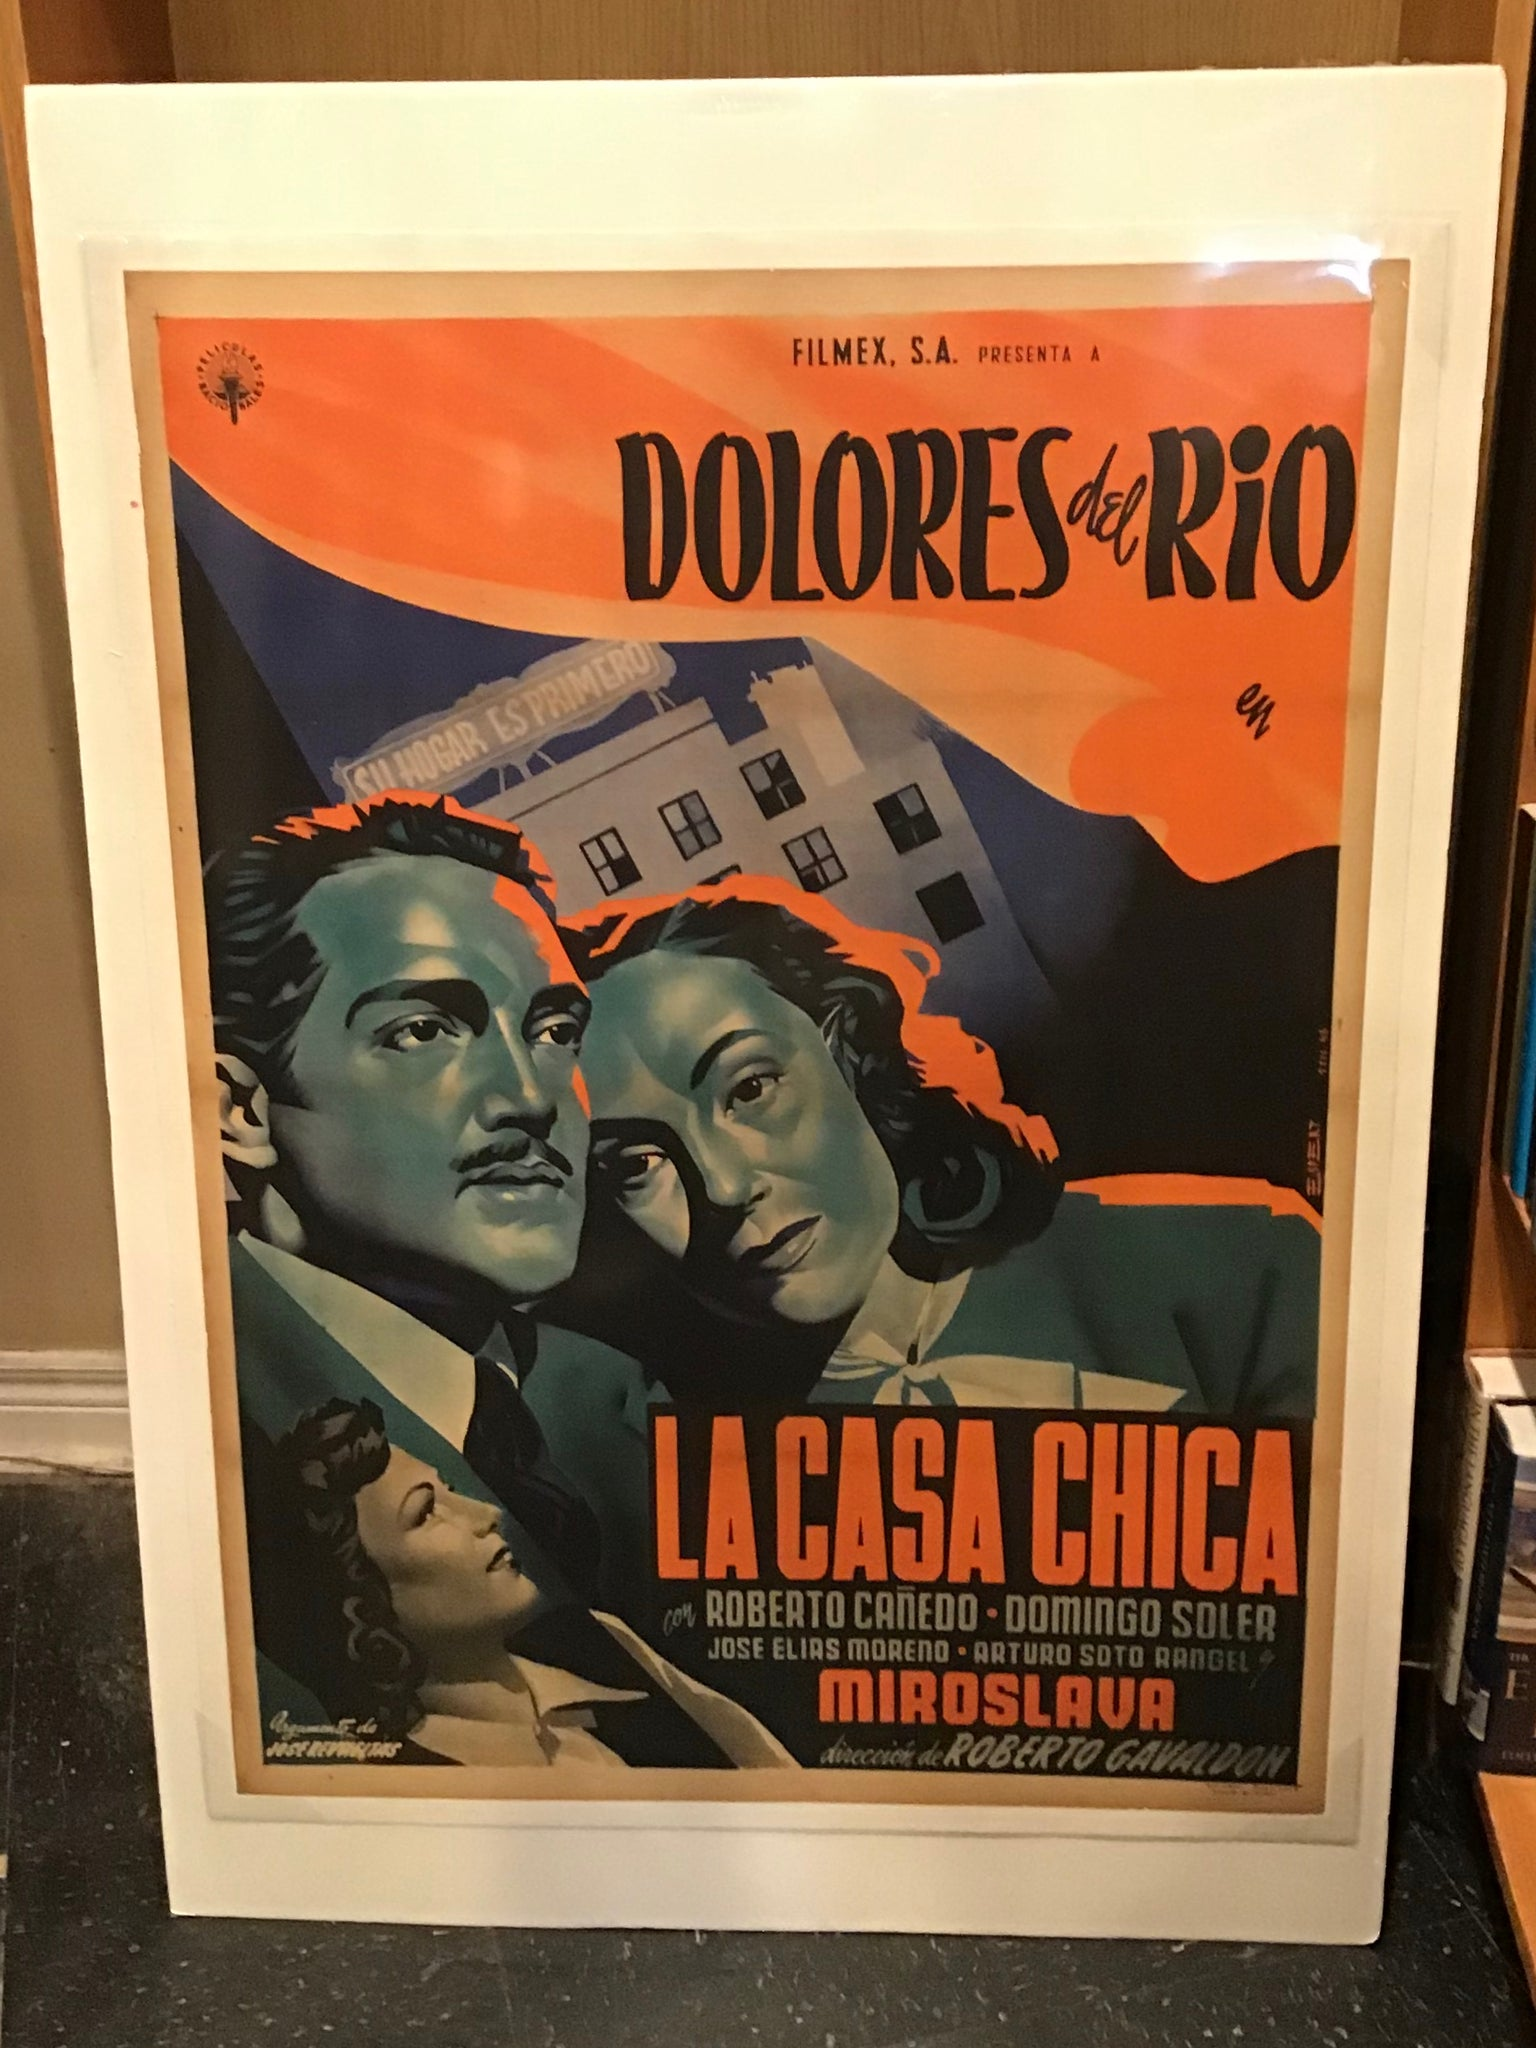 La Casa Chica. Original movie poster (one-sheet on linen)